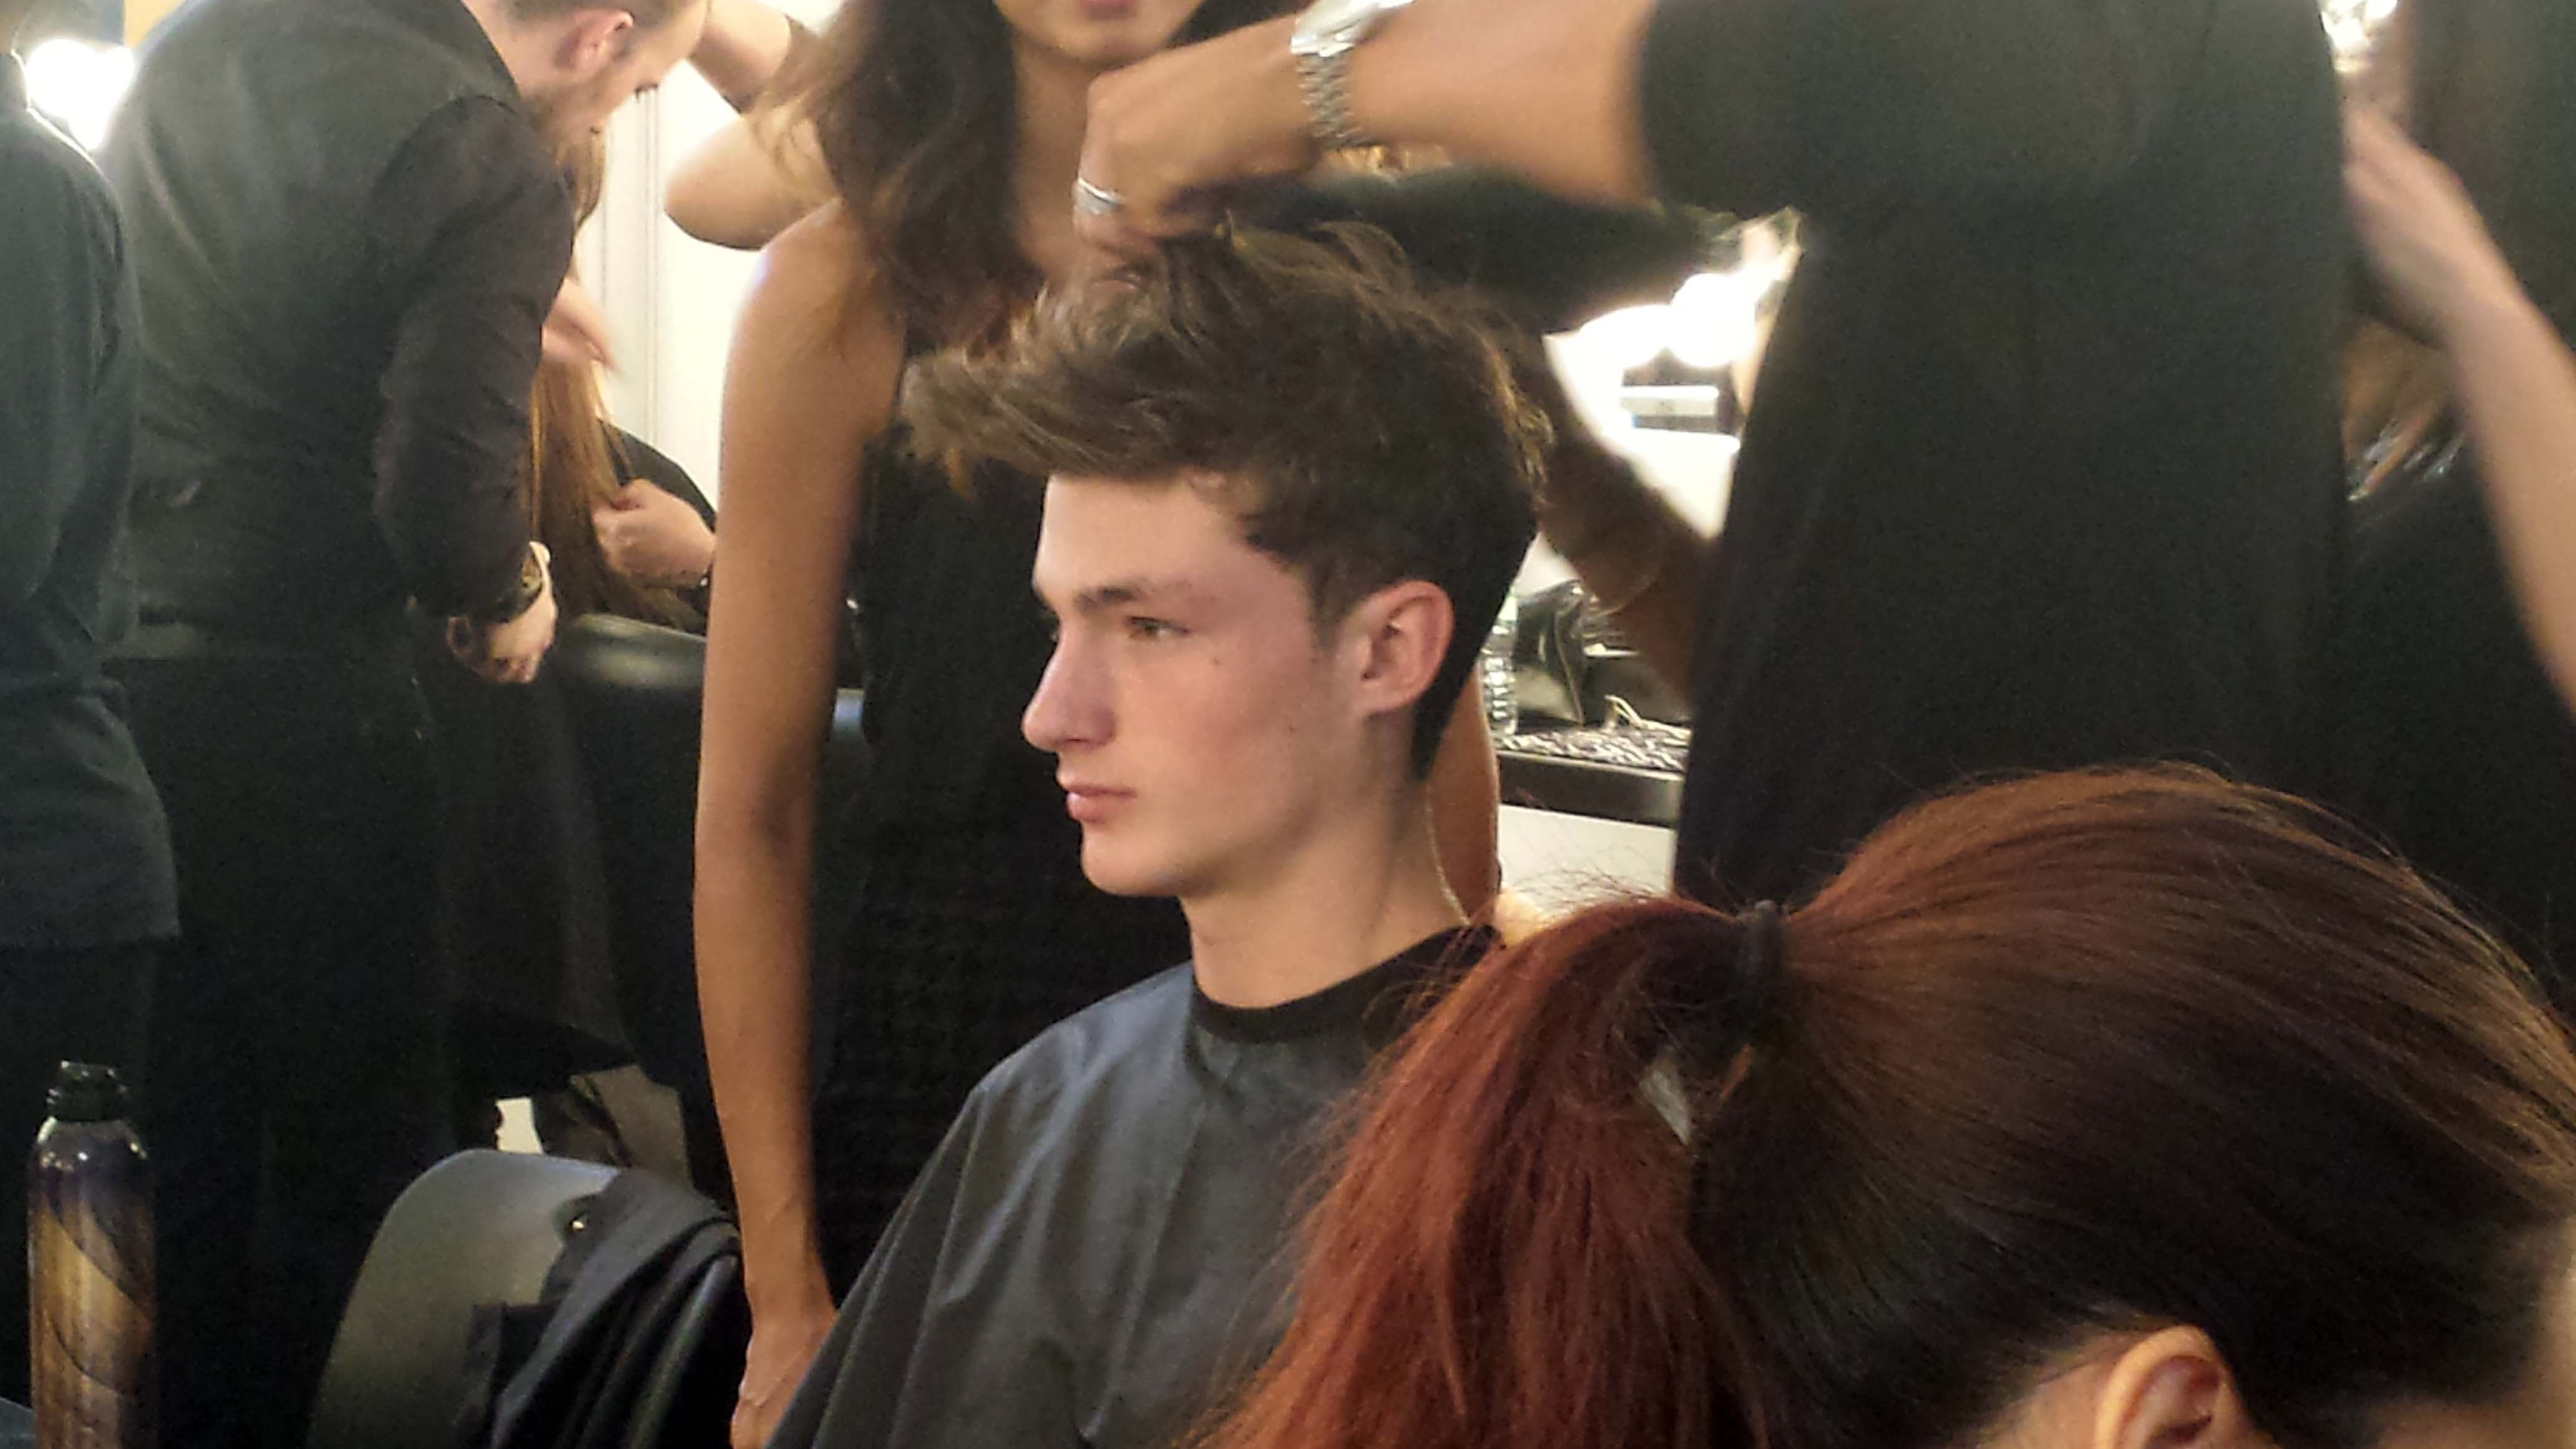 The stylist works his hands through the hair to create natural texture.